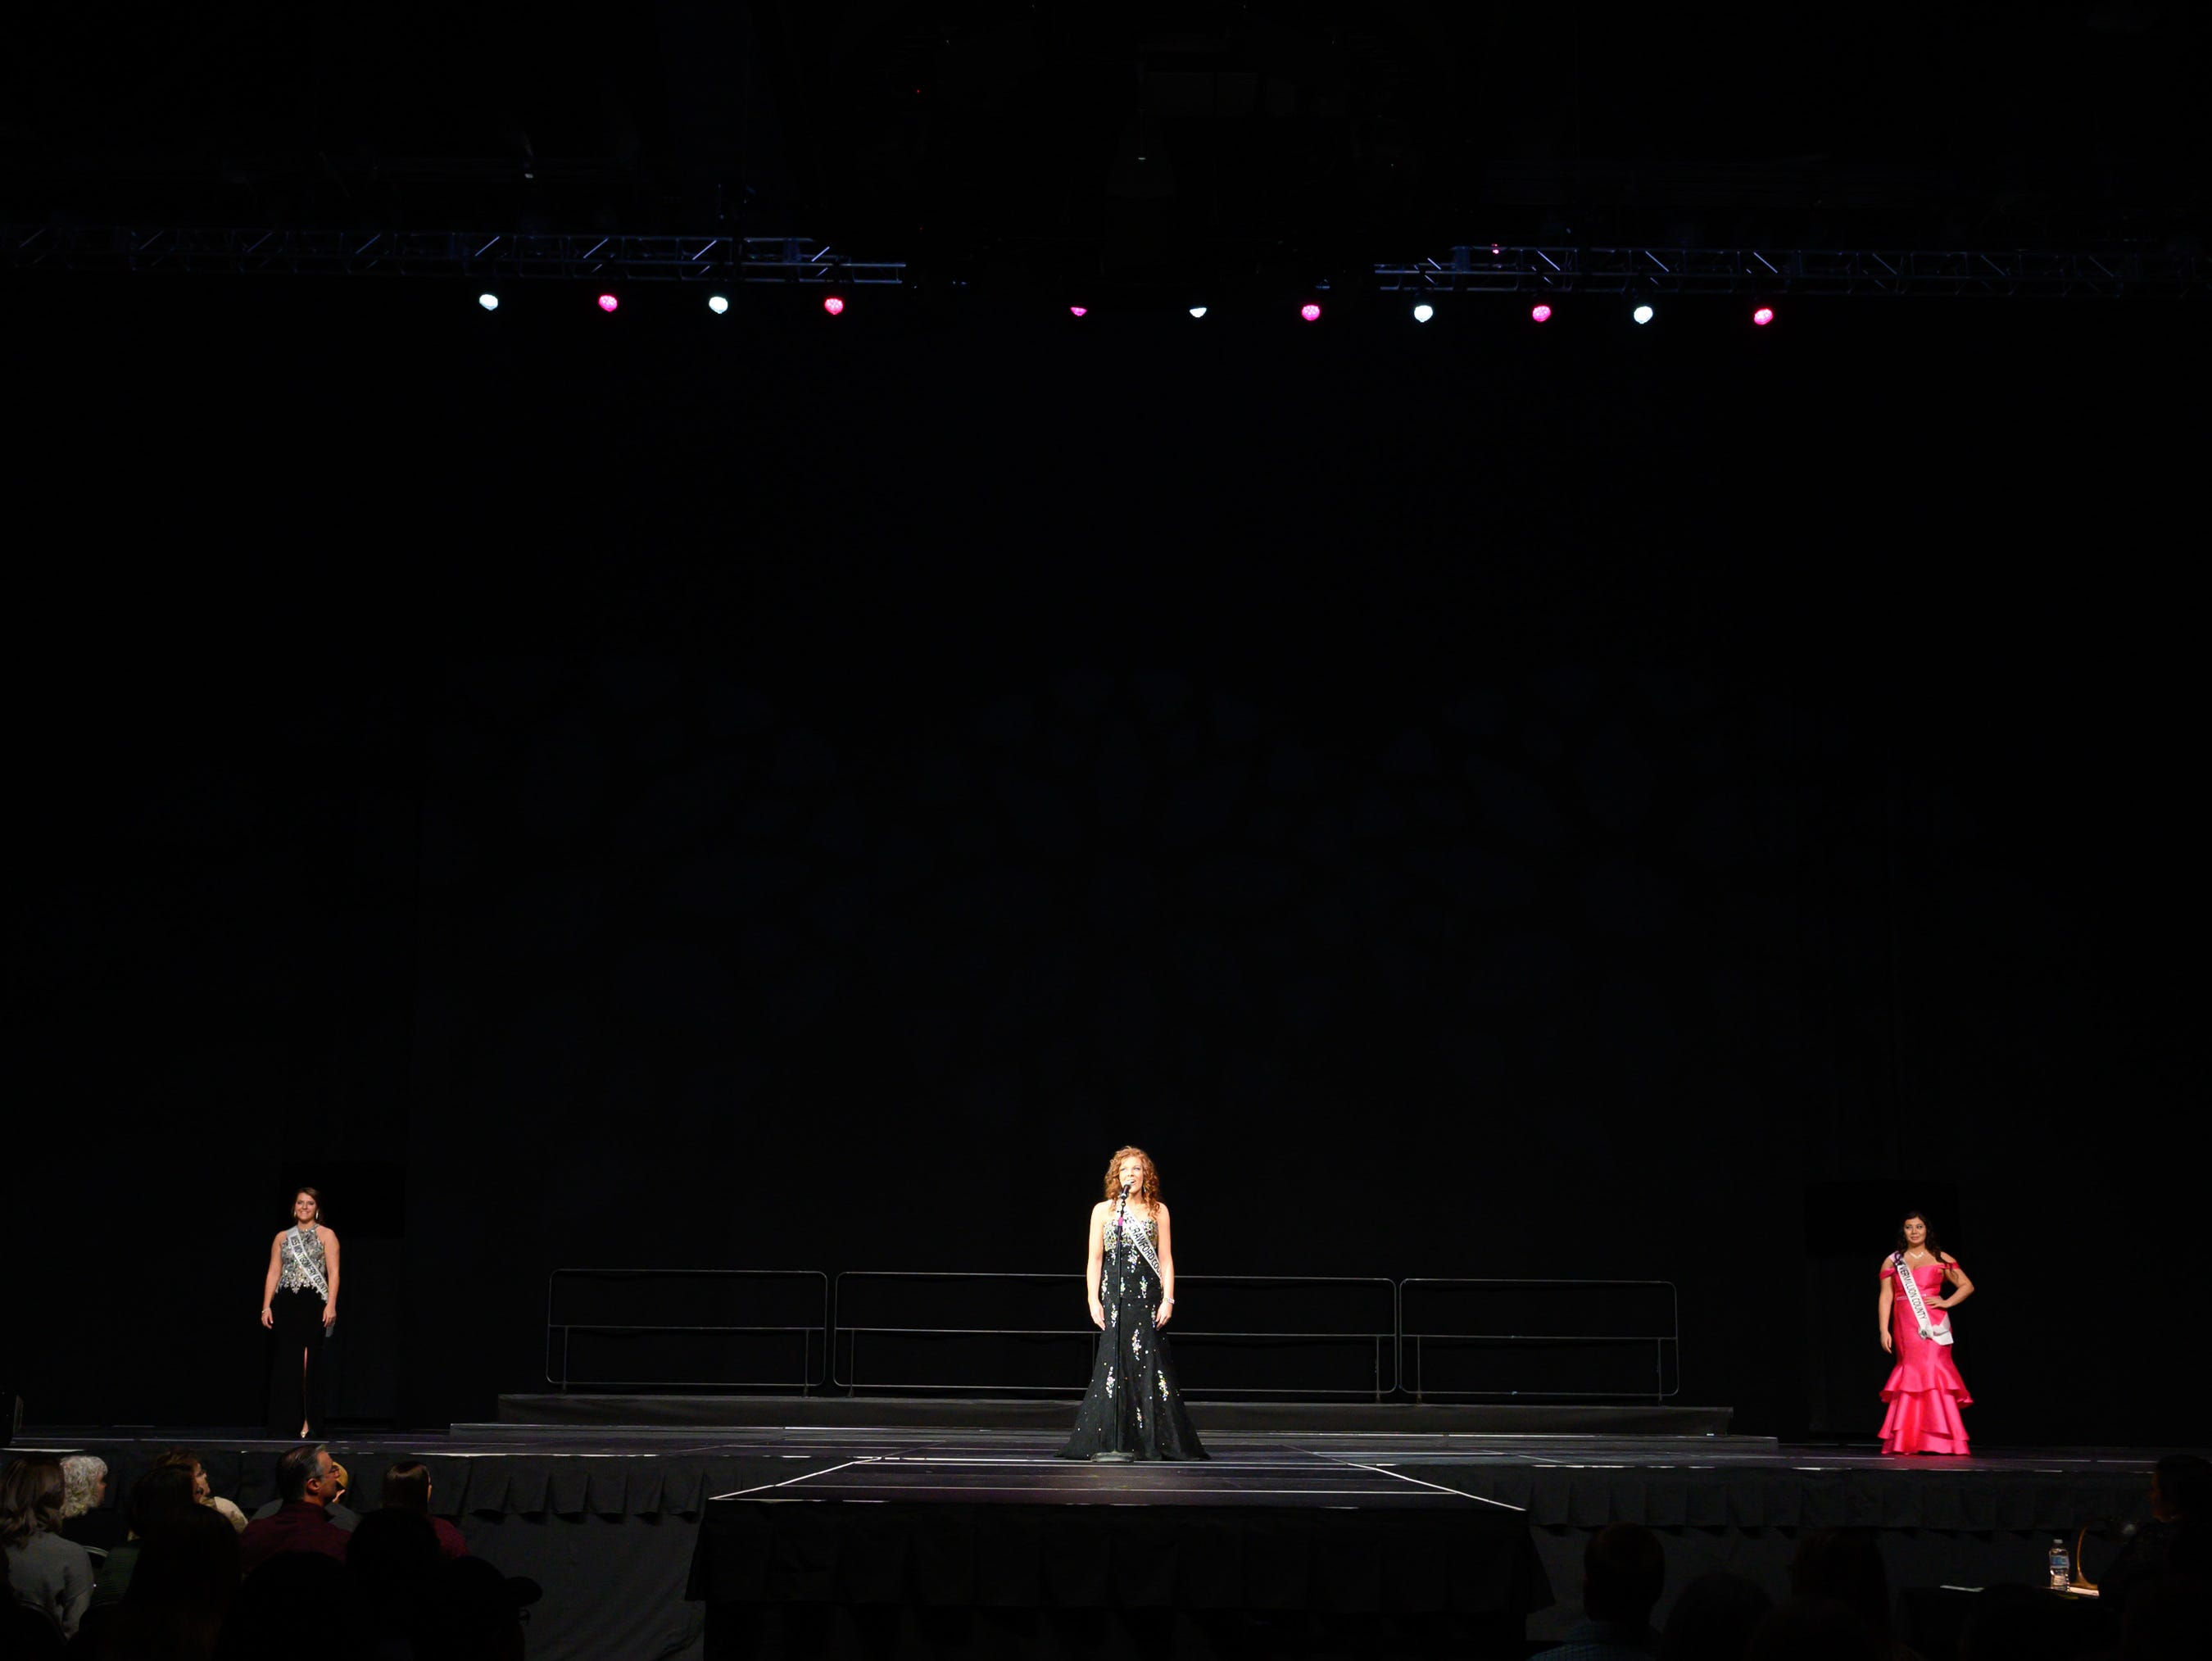 Contestants introduce themselves on stage during the 61st Indiana State Fair Queen Pageant at the Indiana State Fairgrounds in Indianapolis on Sunday, Jan. 6, 2019.